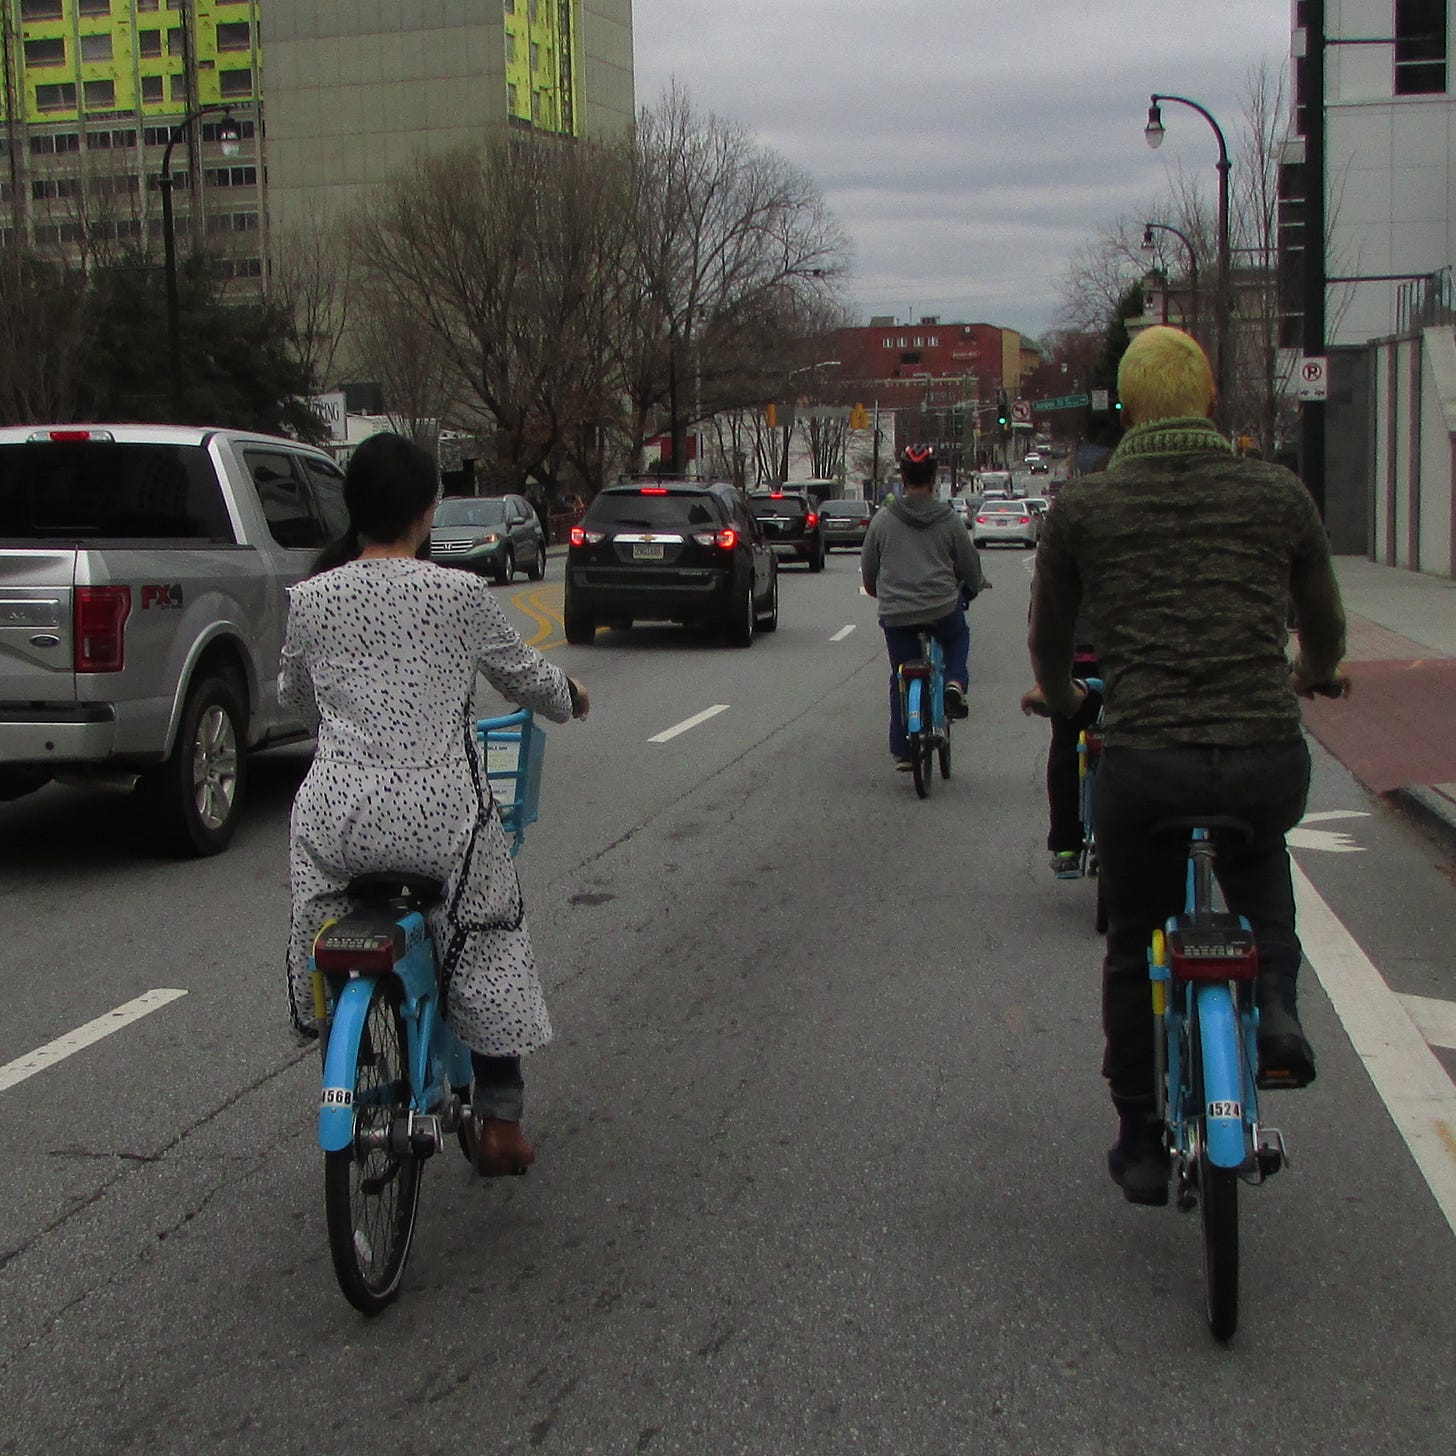 Photo showing two people riding bikes side by side